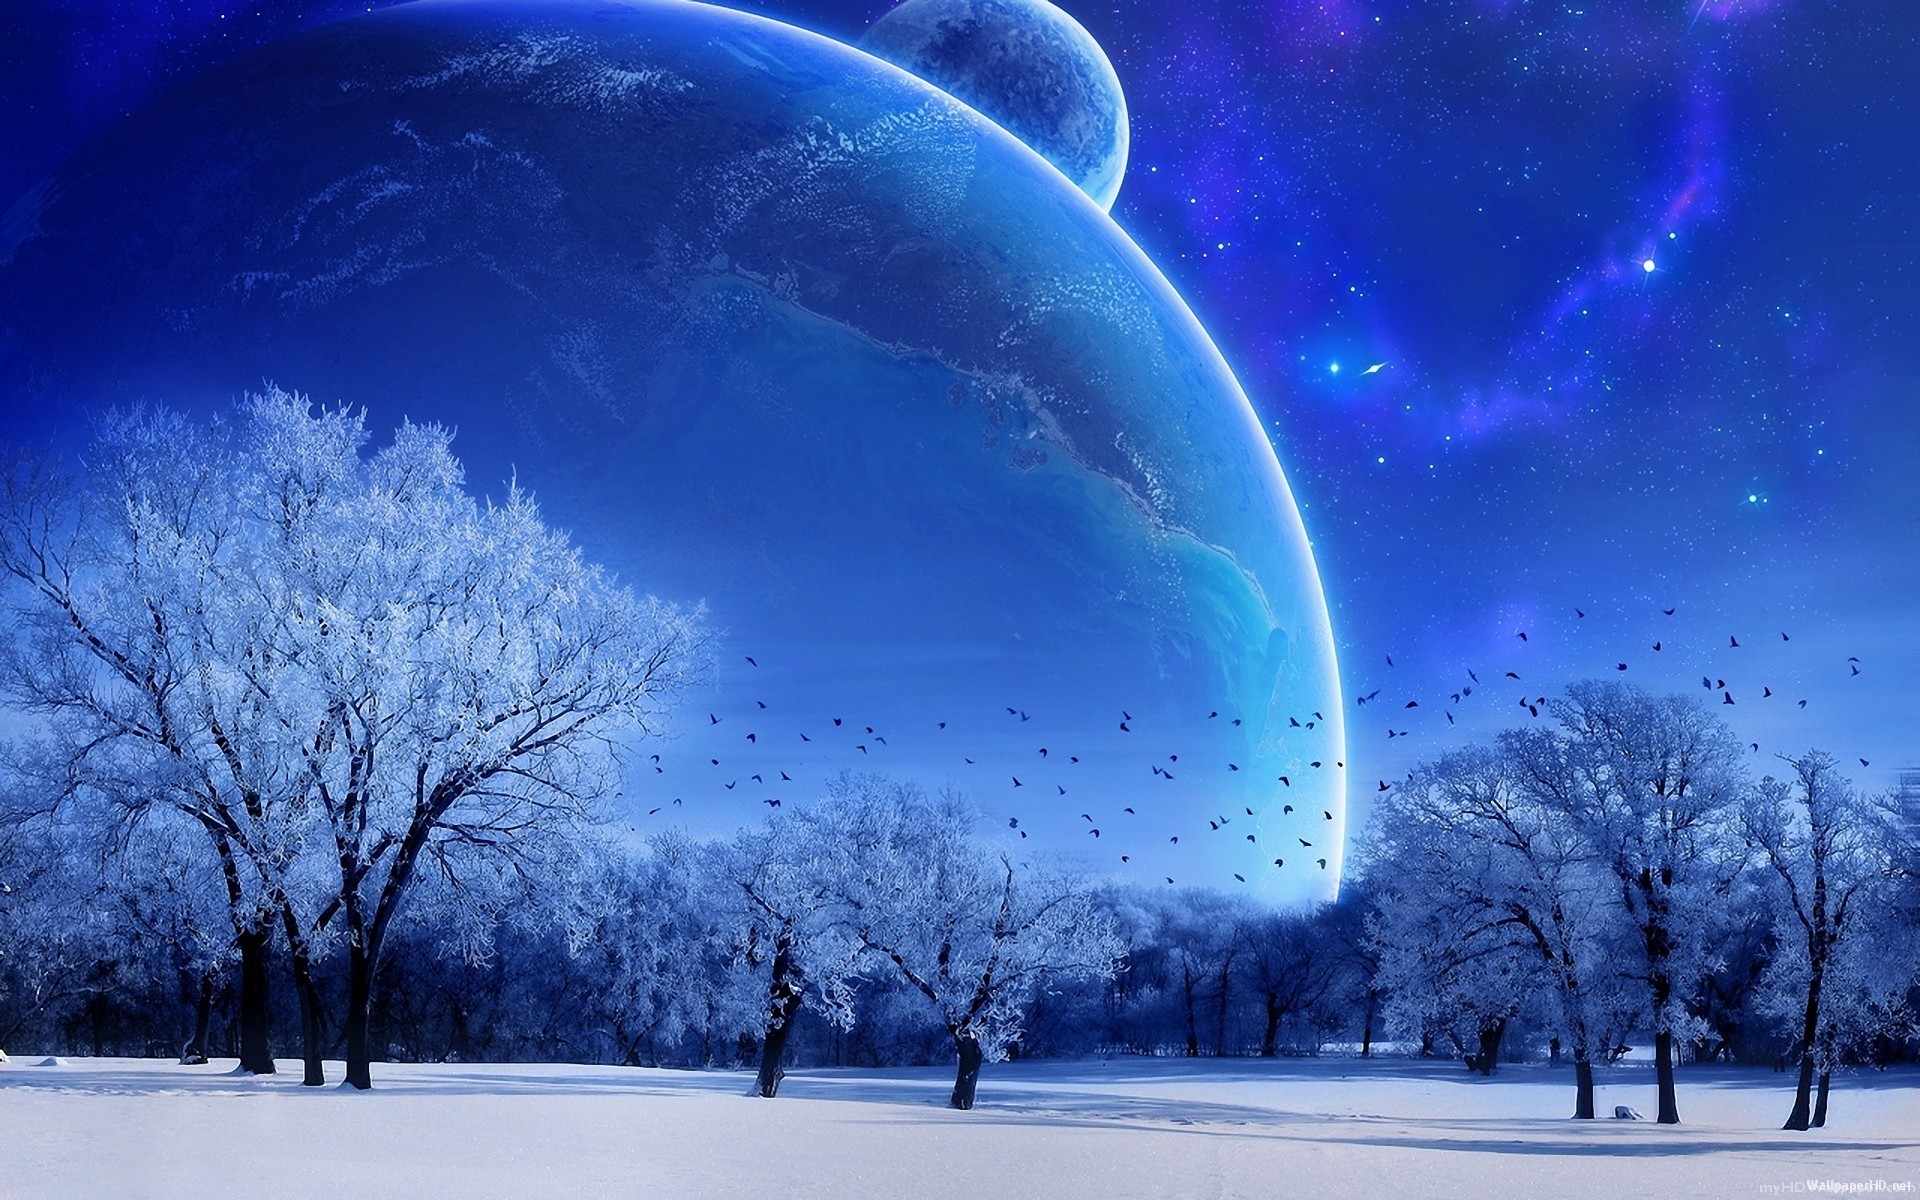 23 best Deep Space images on Pinterest | Deep space, Hd wallpaper and Wallpaper  space